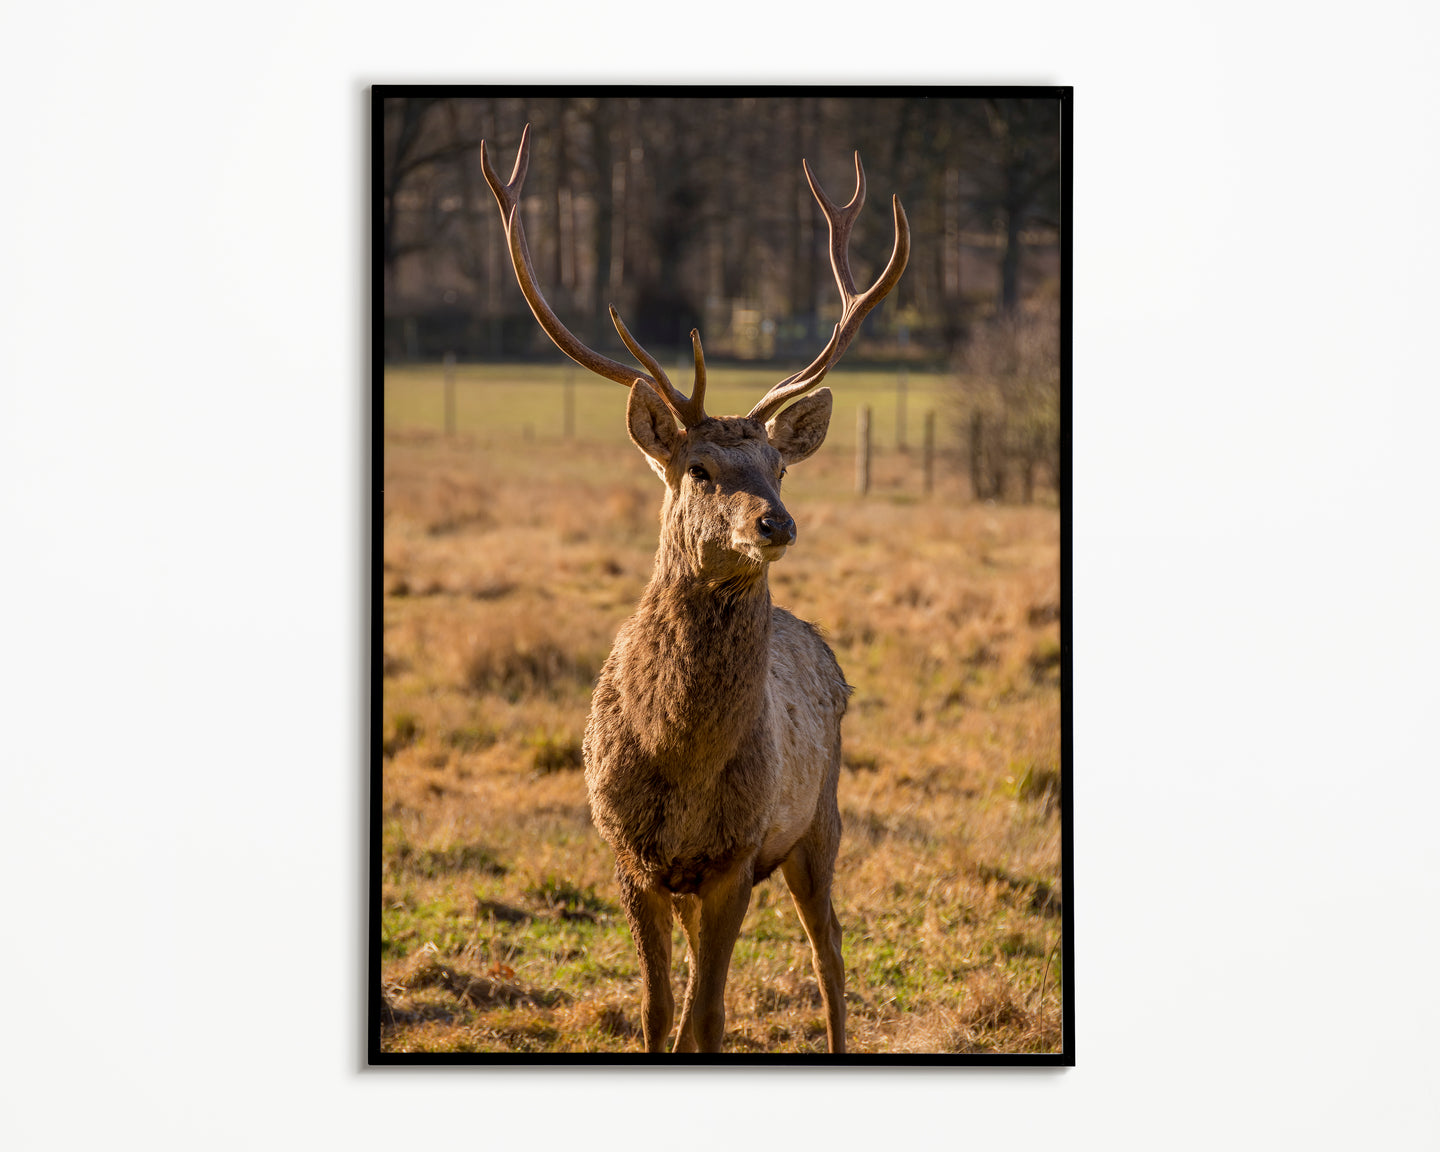 Scottish White Lipped Deer, Deer Art, Deer Print, Scottish Deer, Wildlife Deer, Stag Print, Christmas Gifts, Deer Gift, 8